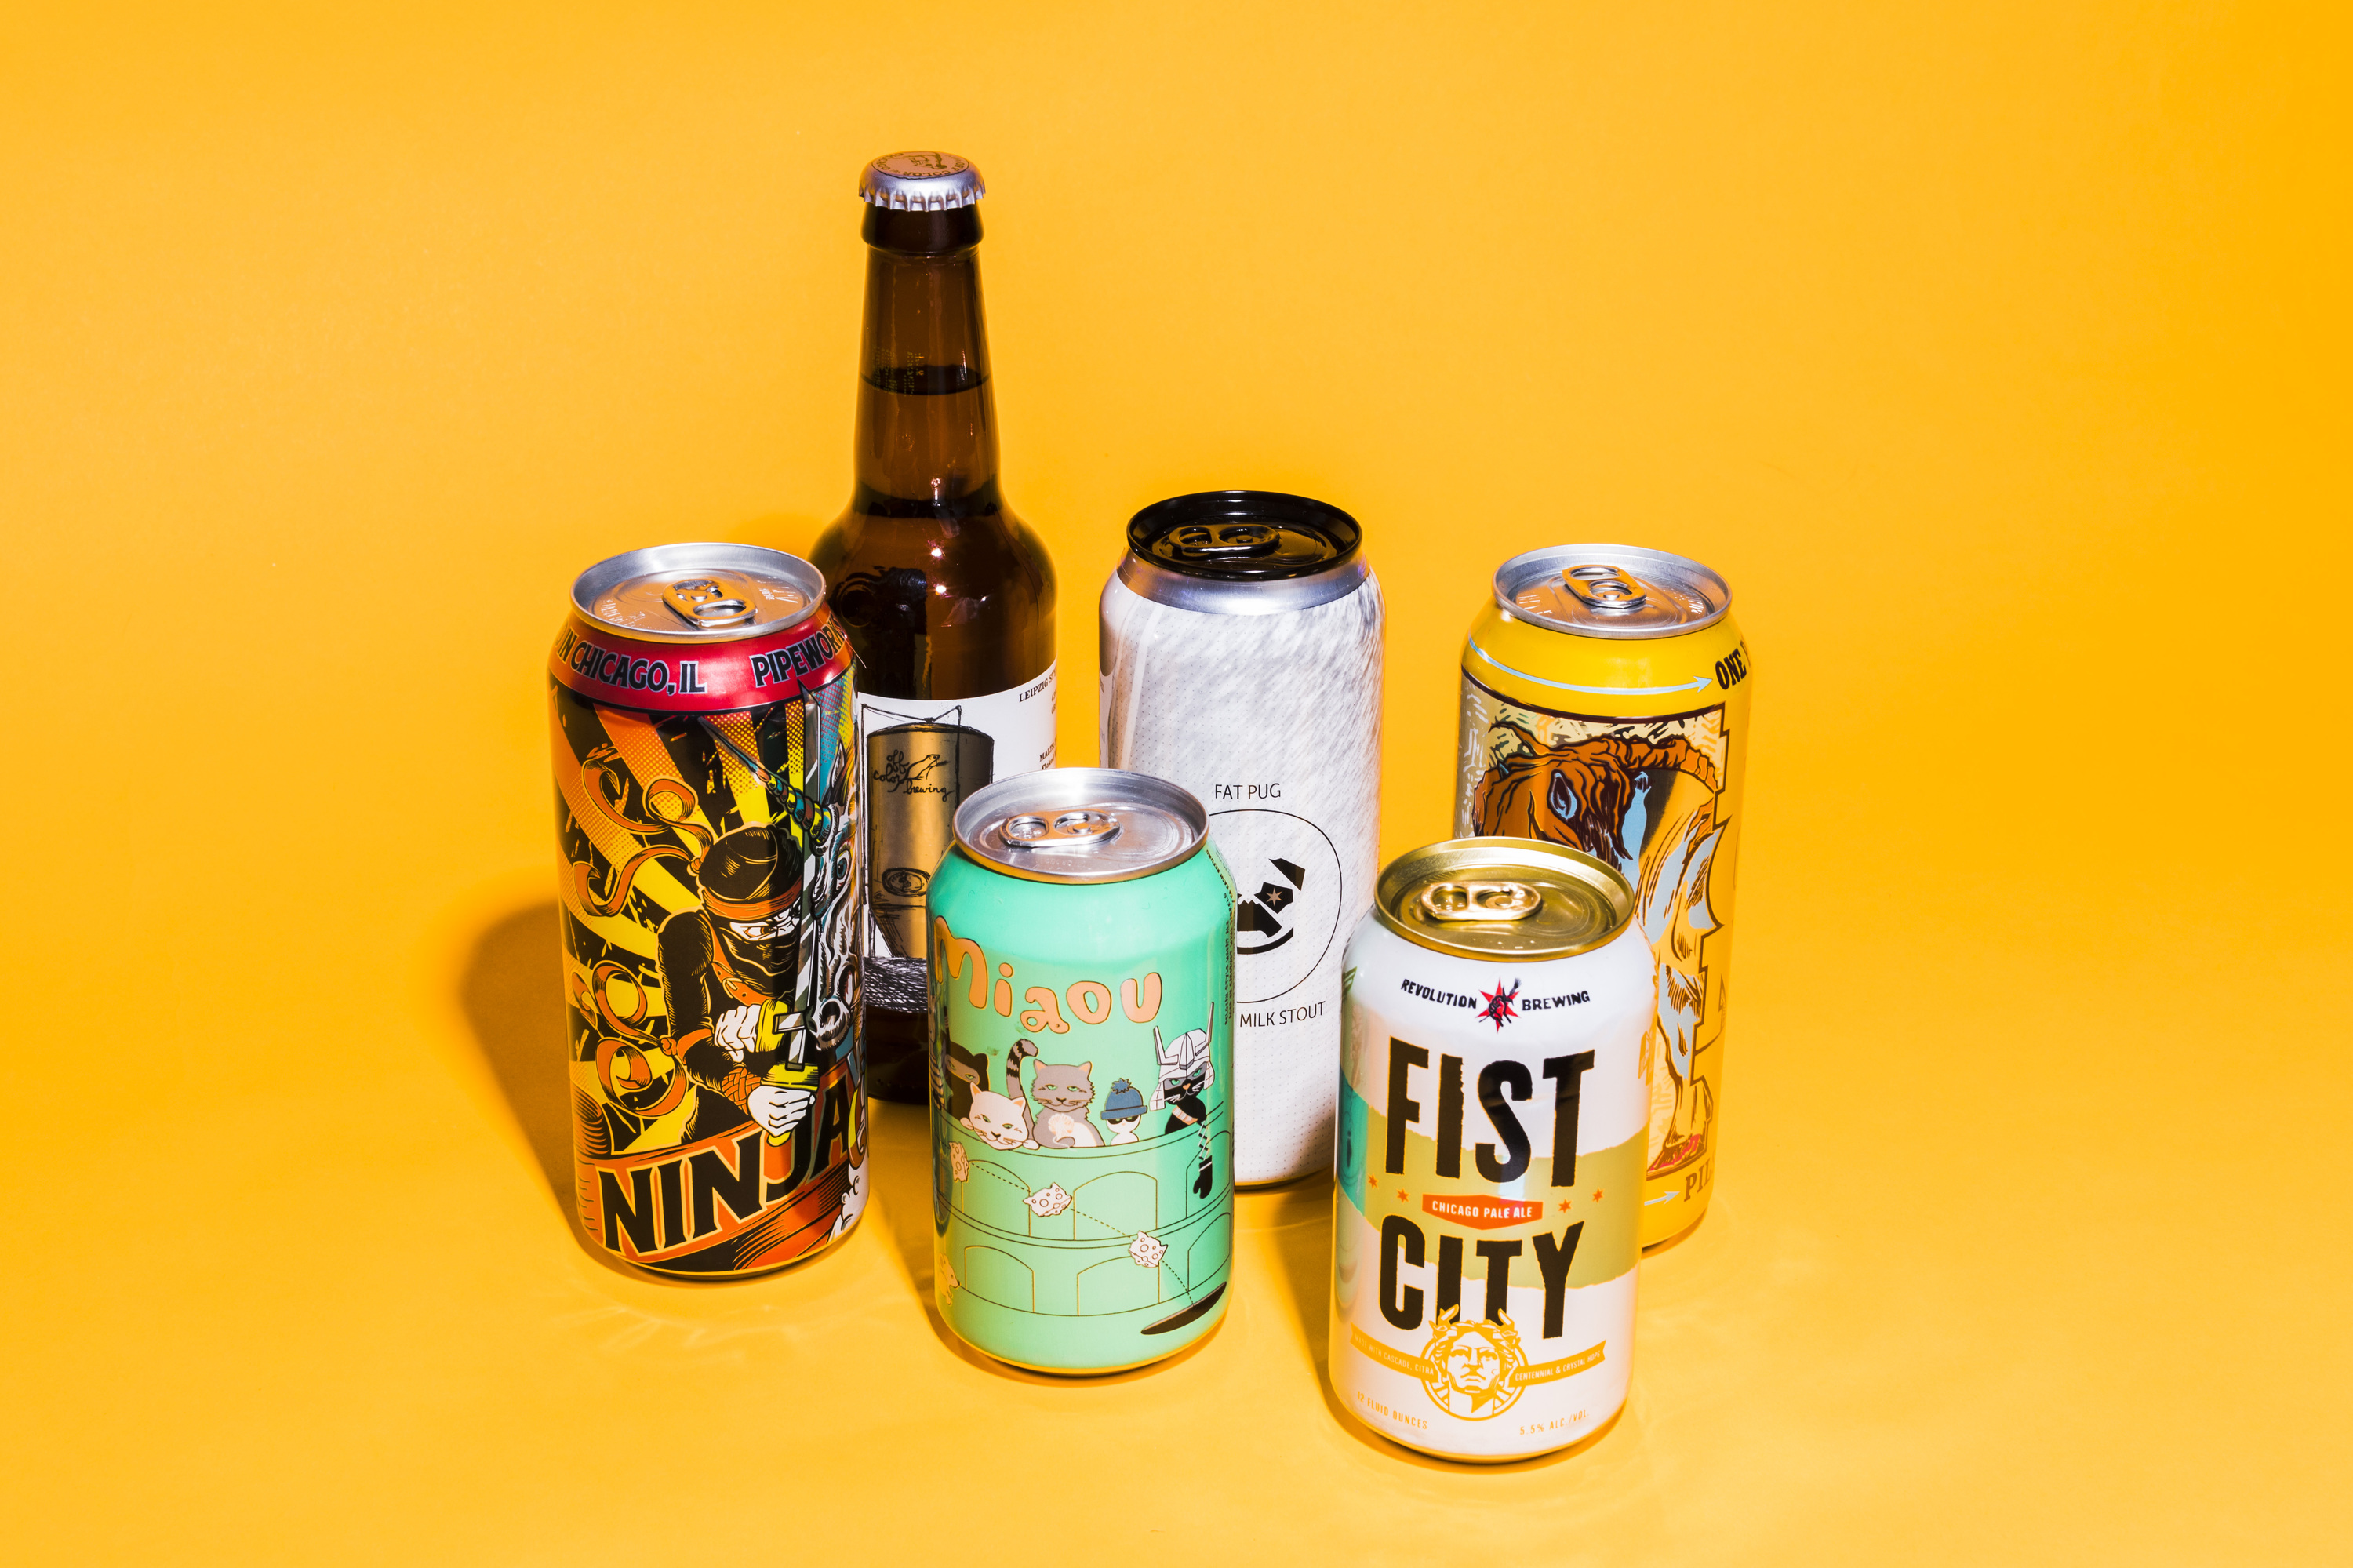 This is the ultimate Chicago six-pack, according to local beer experts